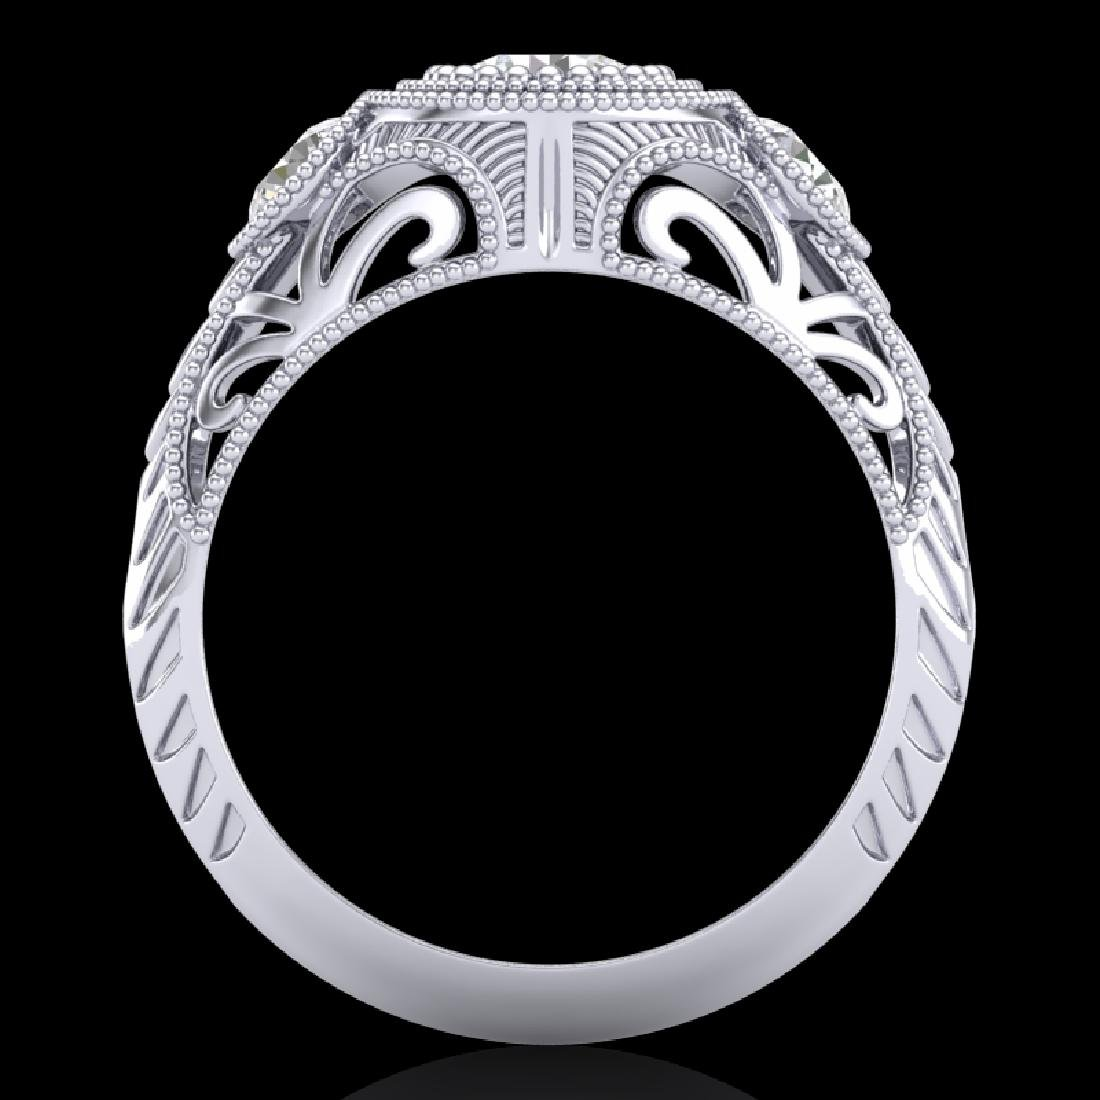 1.06 CTW VS/SI Diamond Solitaire Art Deco 3 Stone Ring